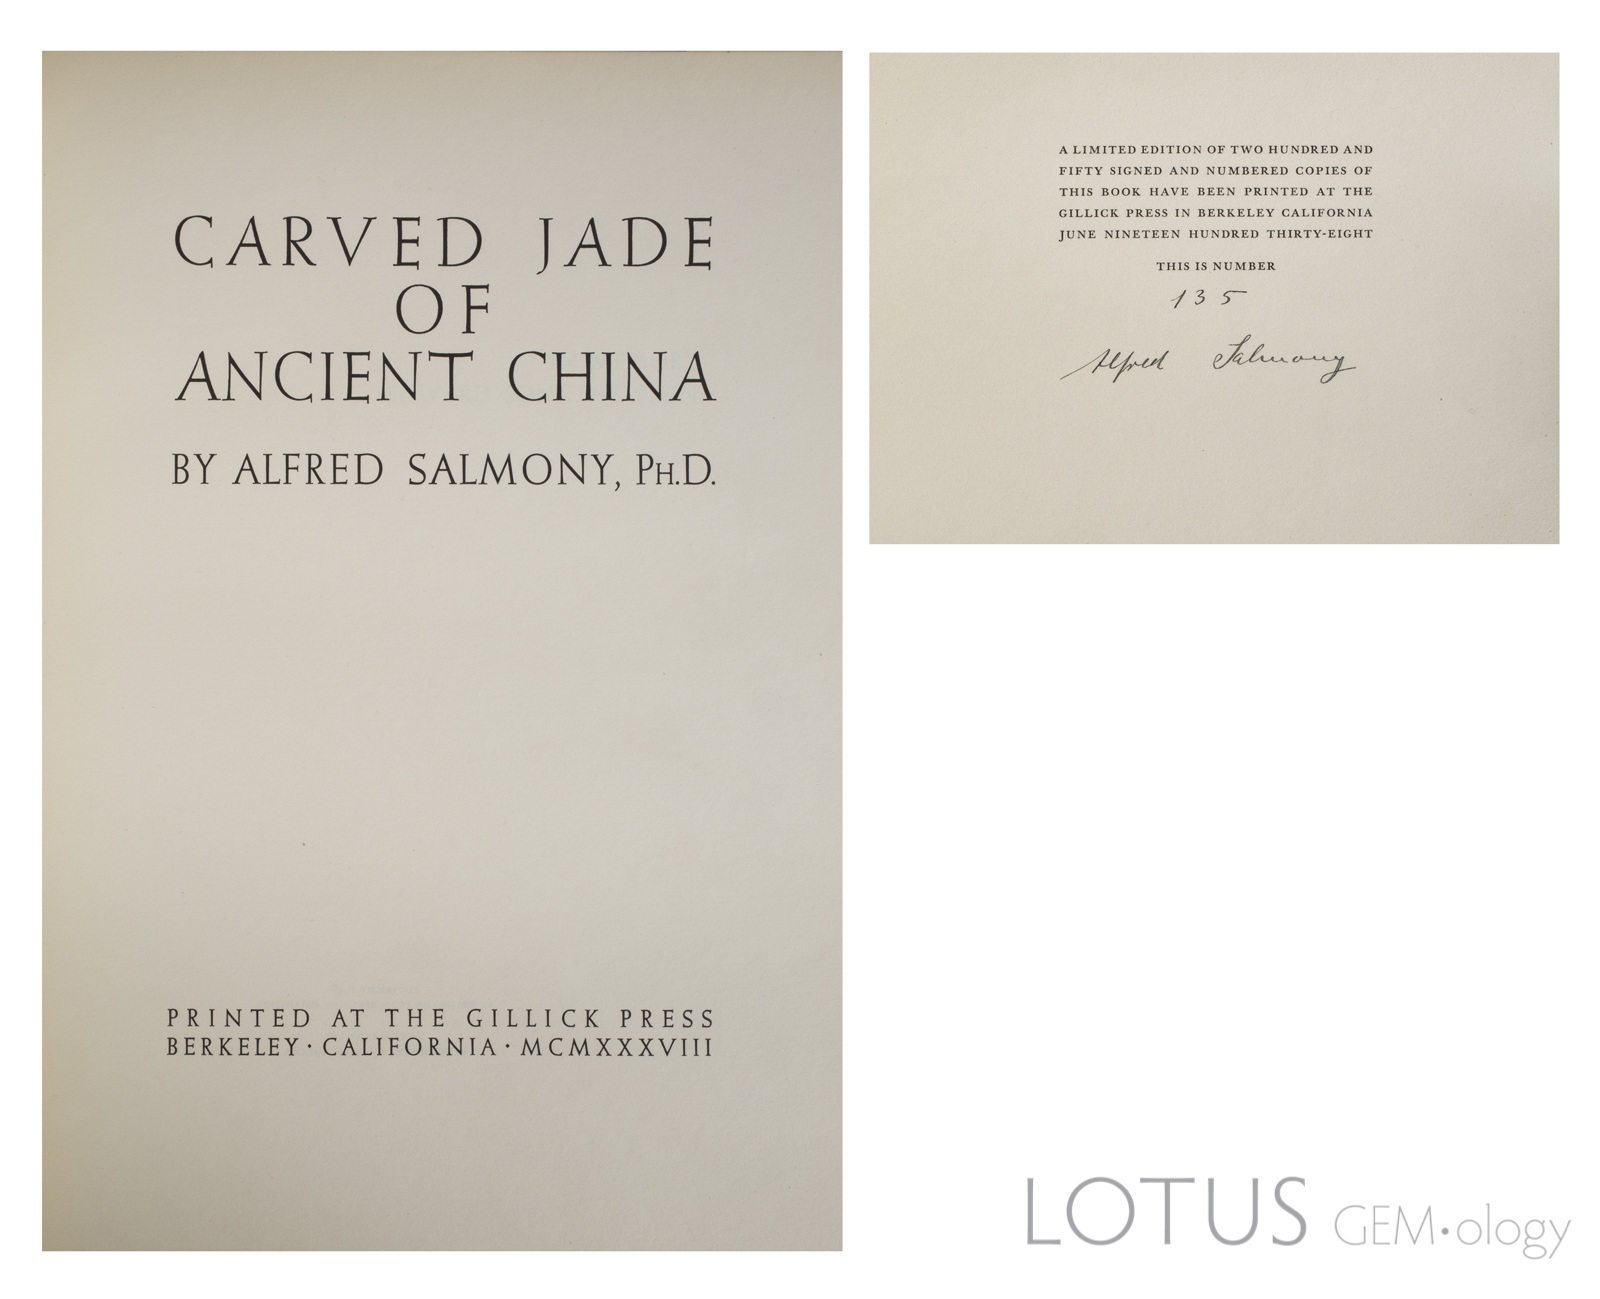 The title page and limited-edition page of Alfred Salmony's Carved Jades of Ancient China. Limited editions are highly collectable, and may fetch anywhere from two to five times more than the standard editions.